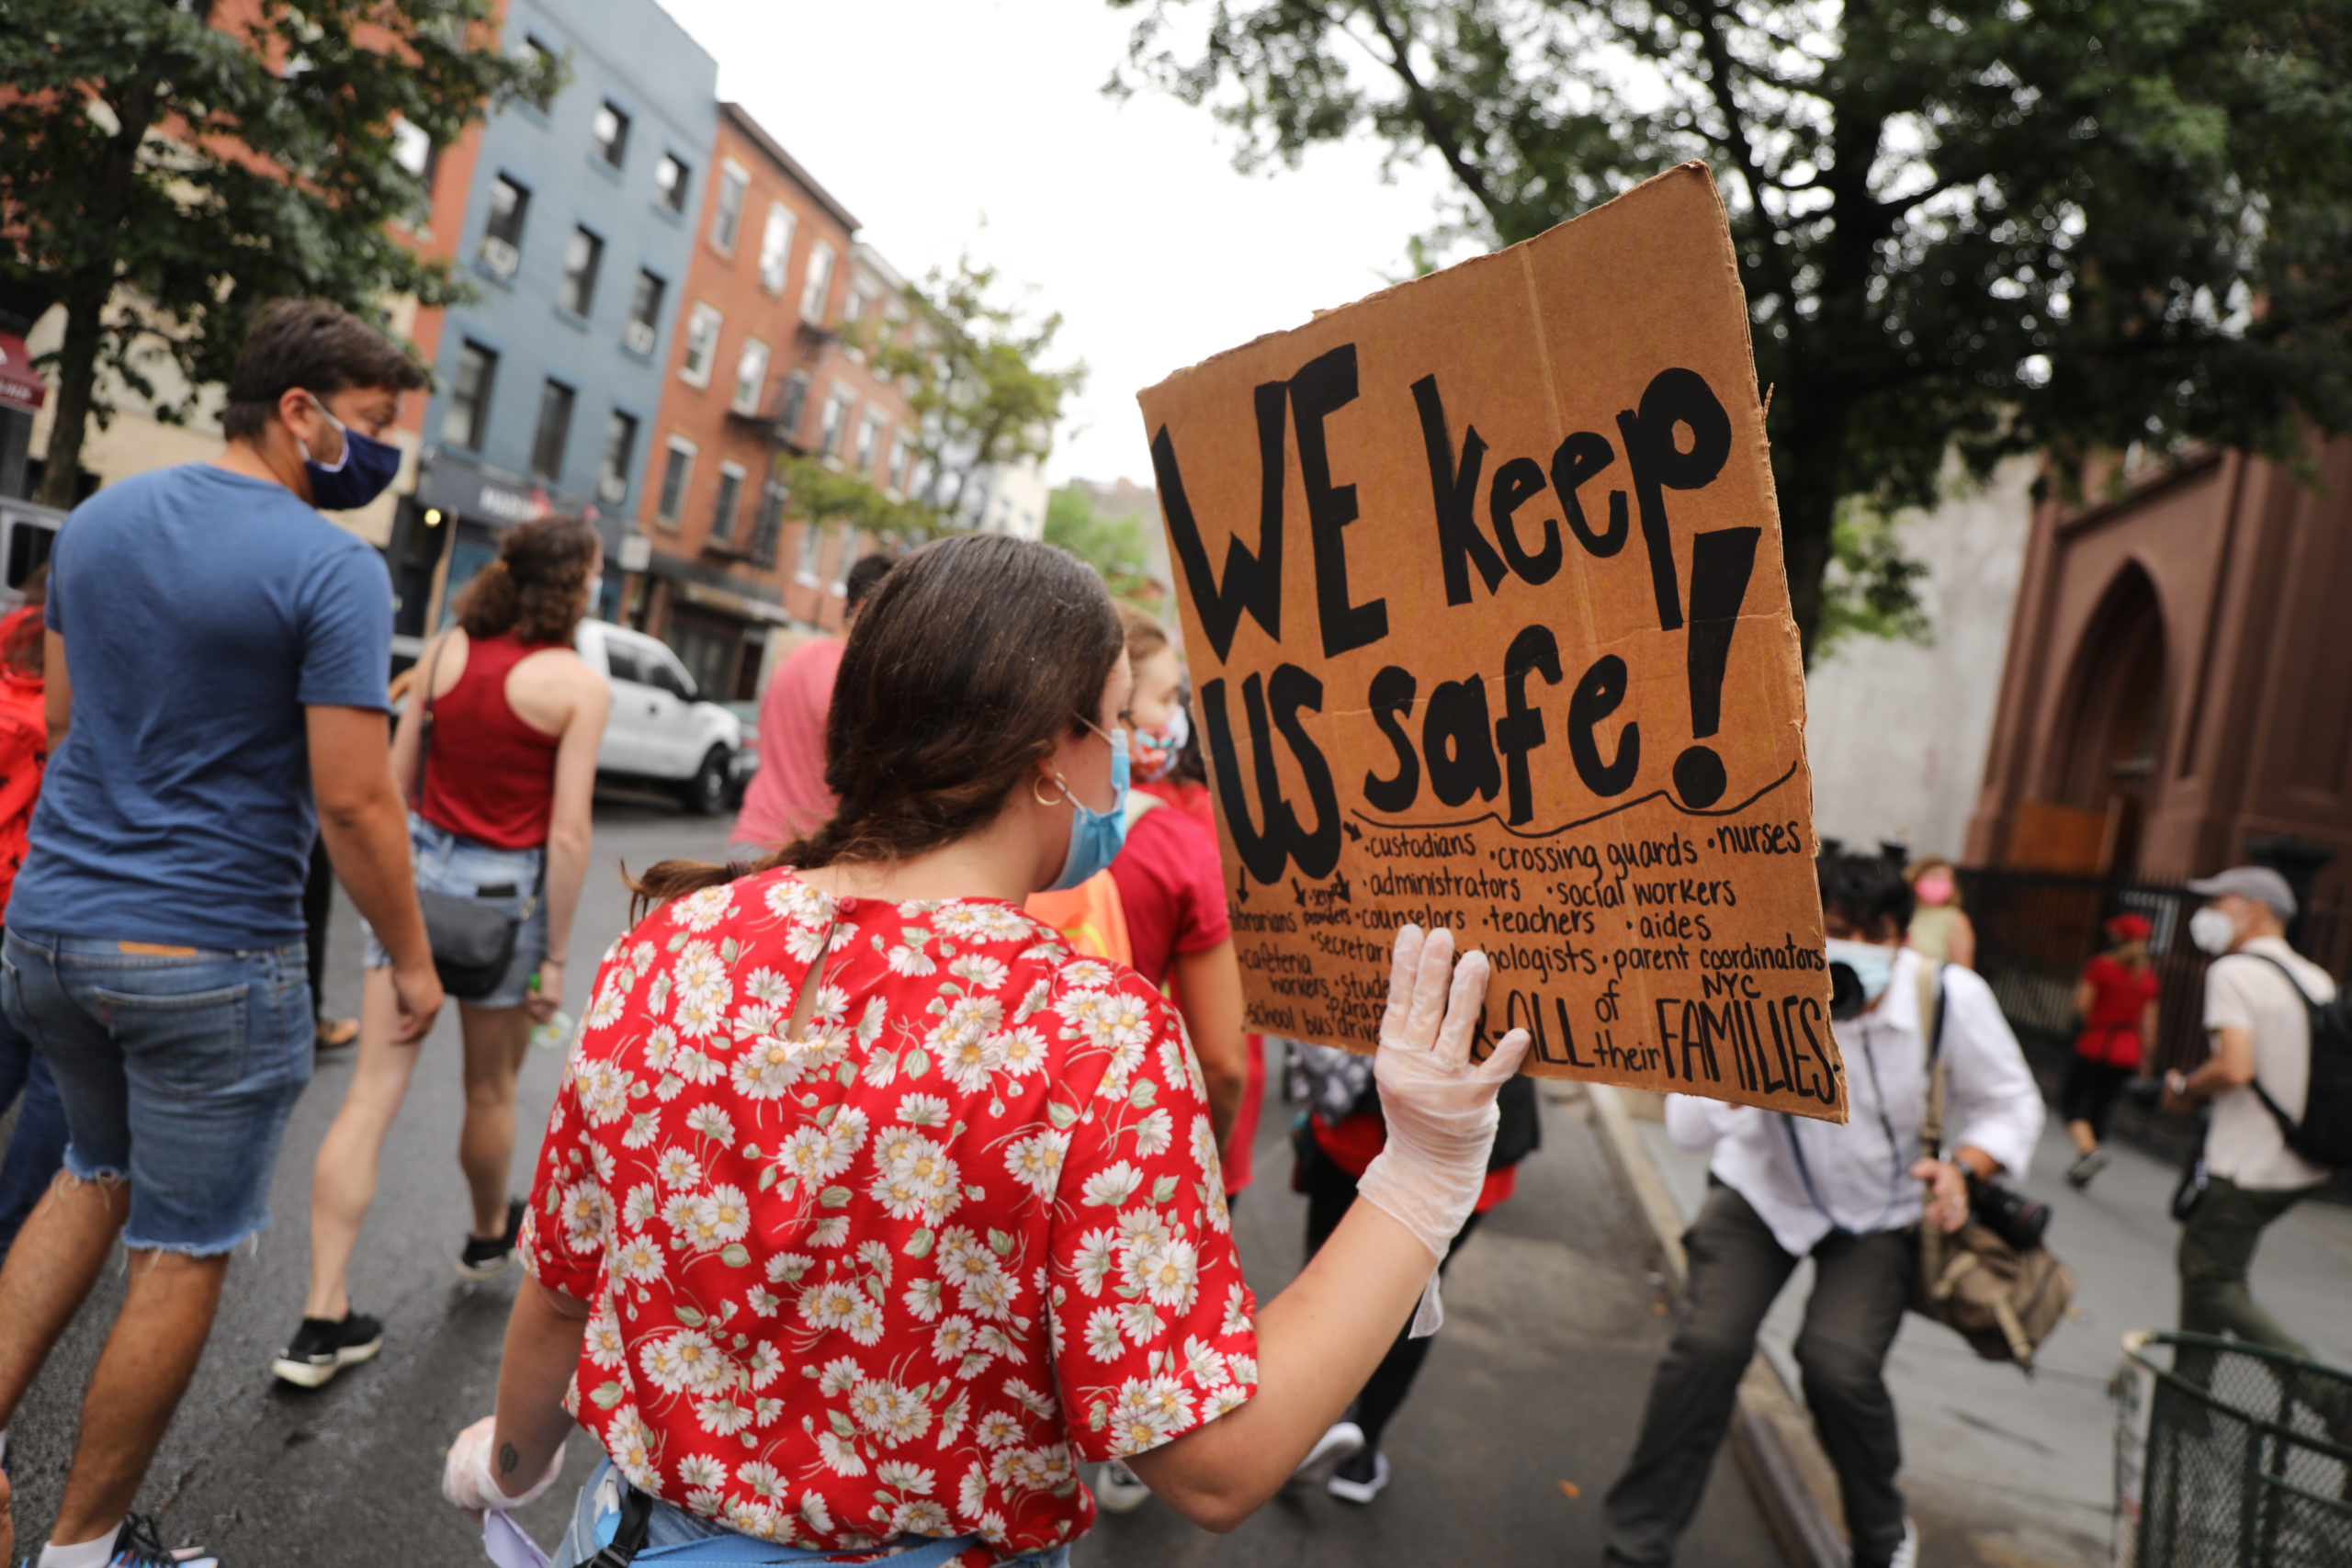 Members of the teachers union, parents and students participate in a march through Brooklyn to demand a safer teaching environment for themselves and for students on Sept. 1. (Spencer Platt/Getty Images)